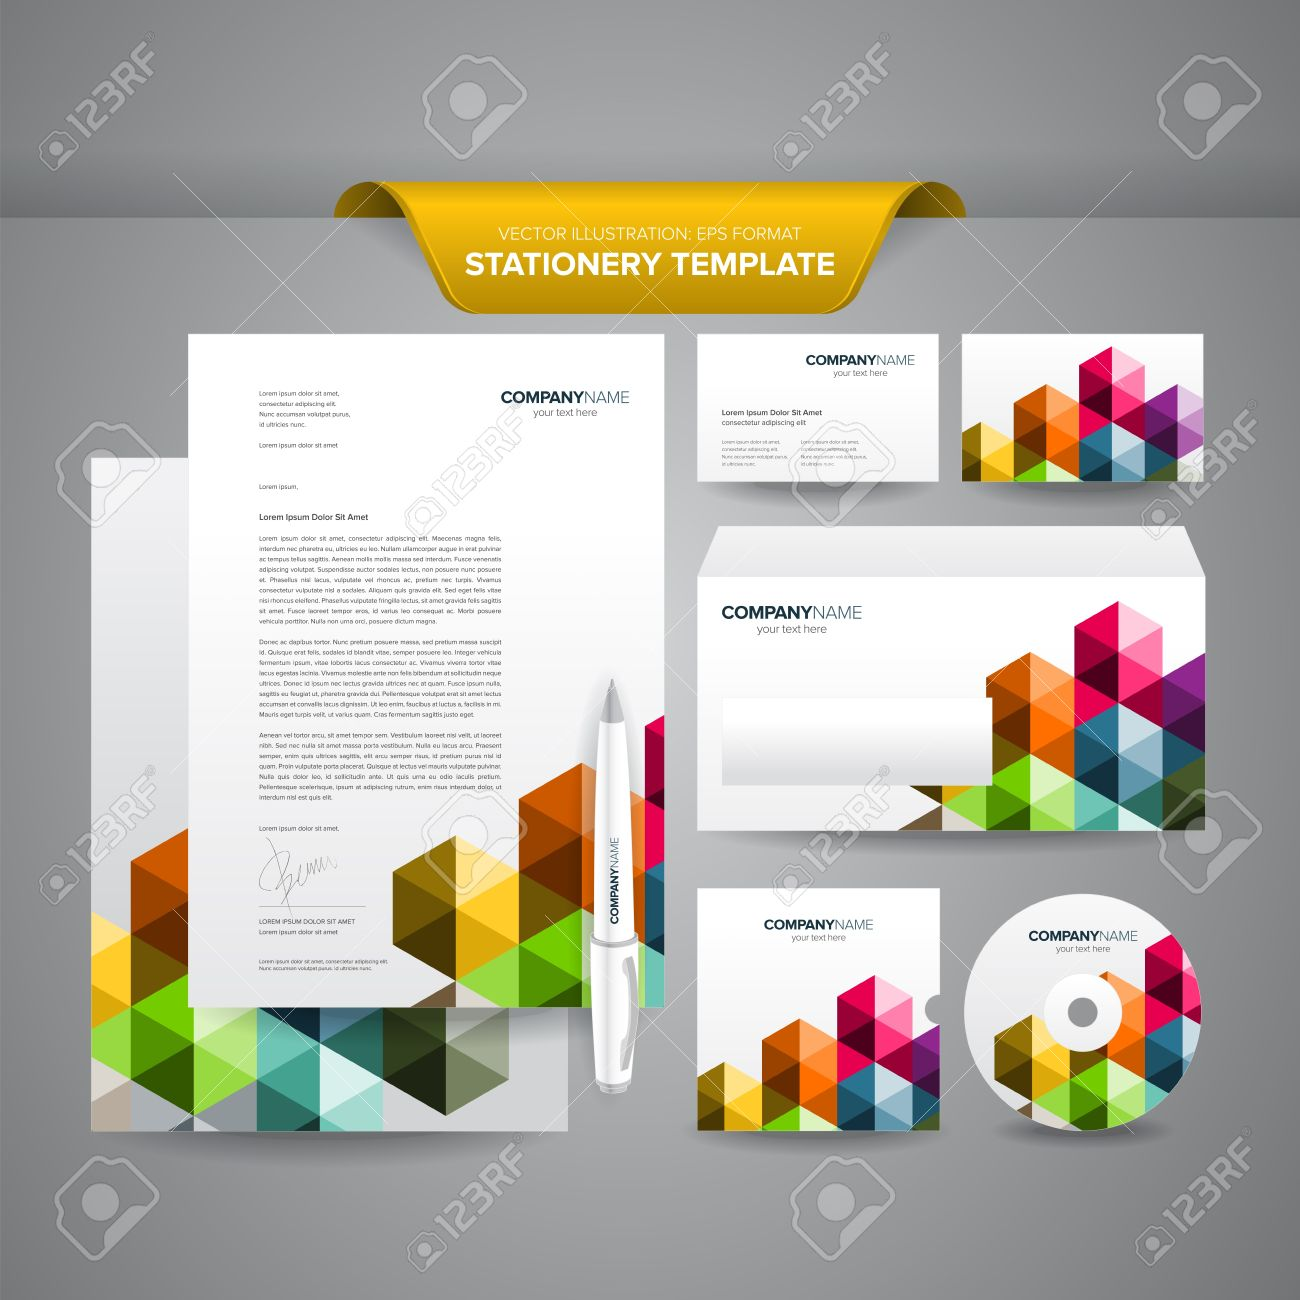 Cd box template download free vector art stock graphics amp images - Cd Template Complete Set Of Business Stationery Template Such As Letterhead Business Cards